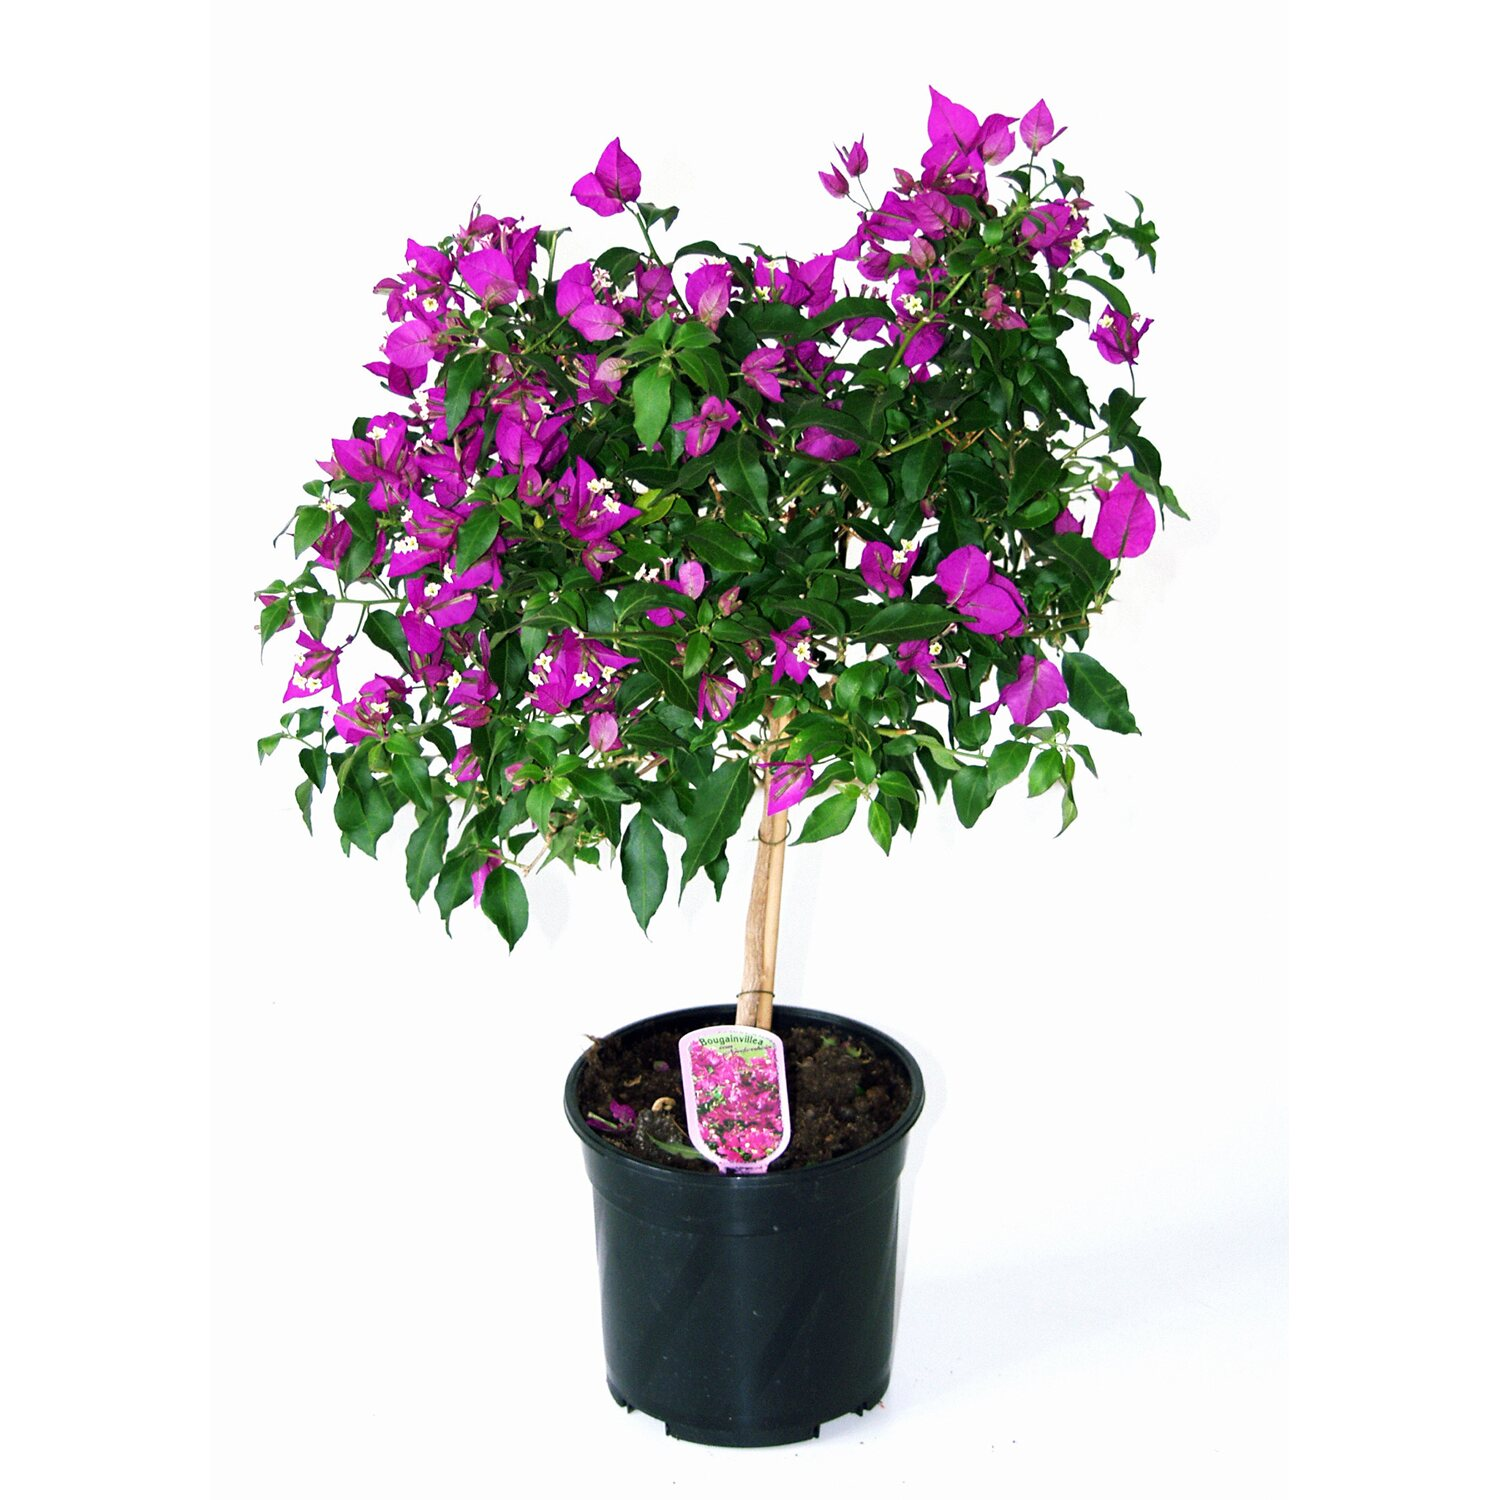 drillingsblume ministamm topf ca 16 cm bougainvillea. Black Bedroom Furniture Sets. Home Design Ideas